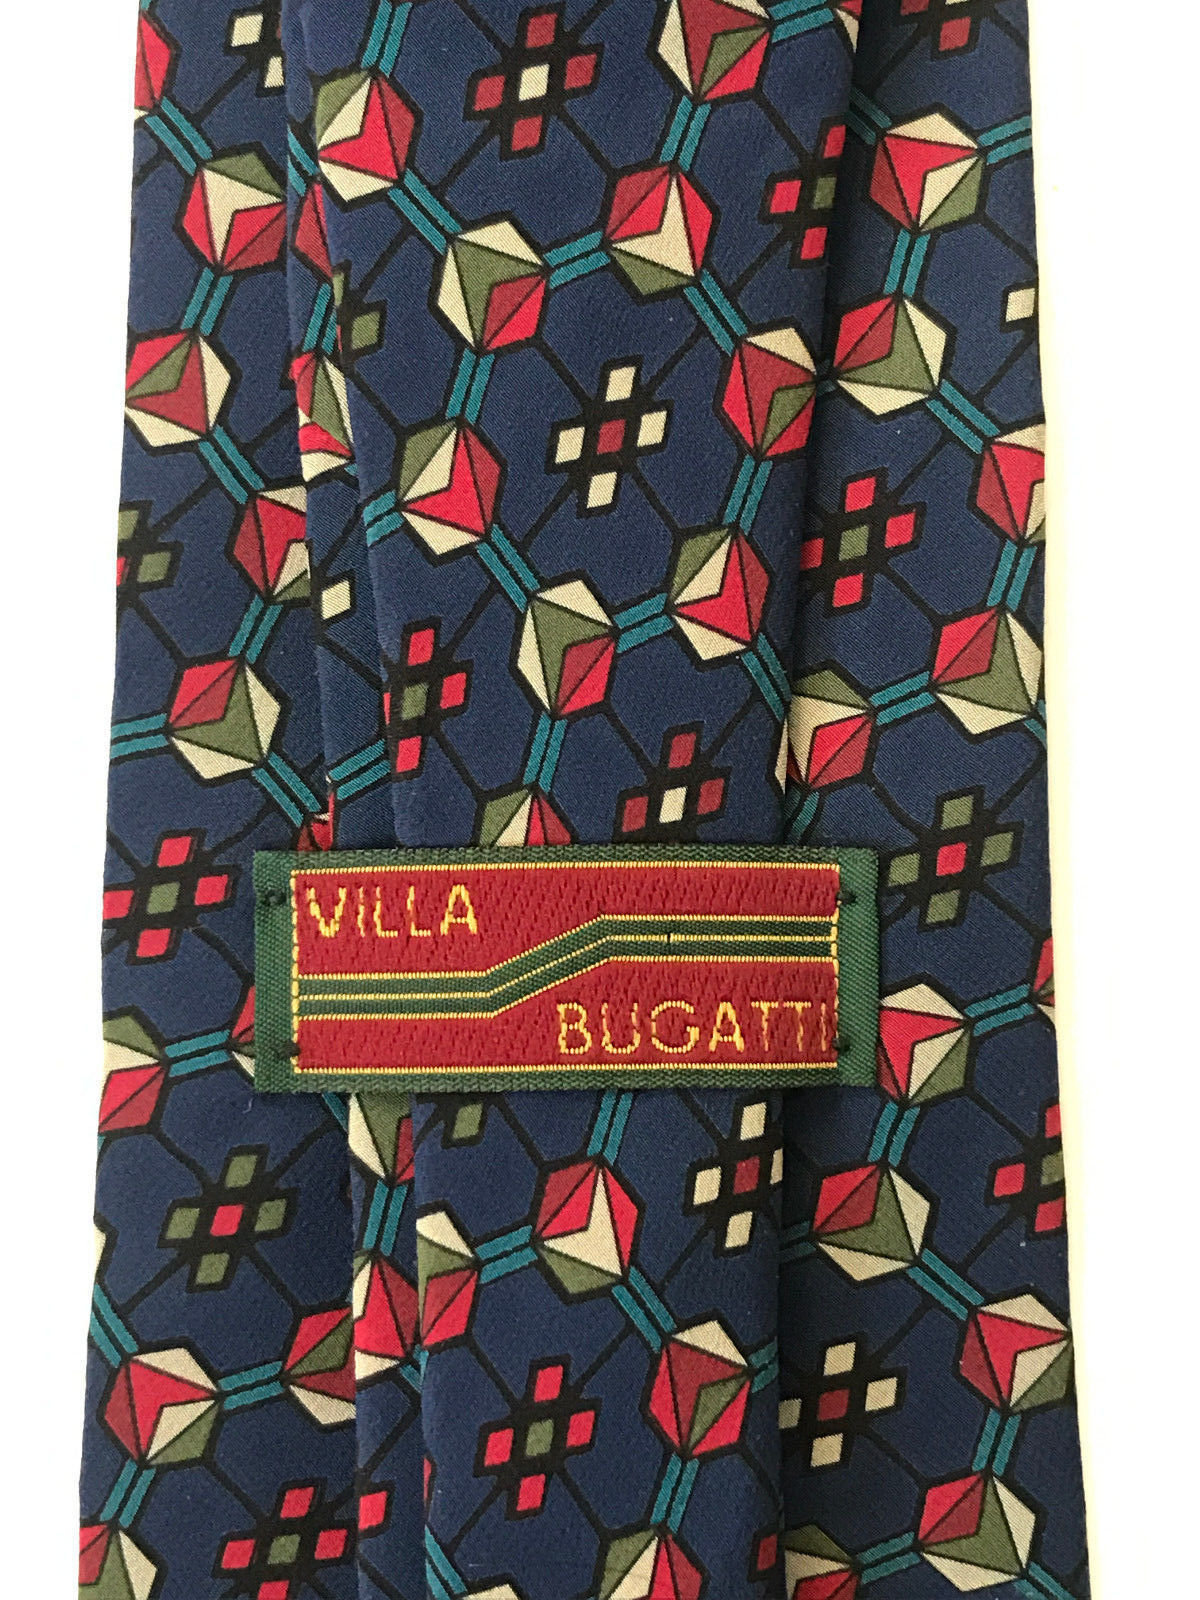 Villa Bugatti Silk Neck Tie Blue Geometric Circles